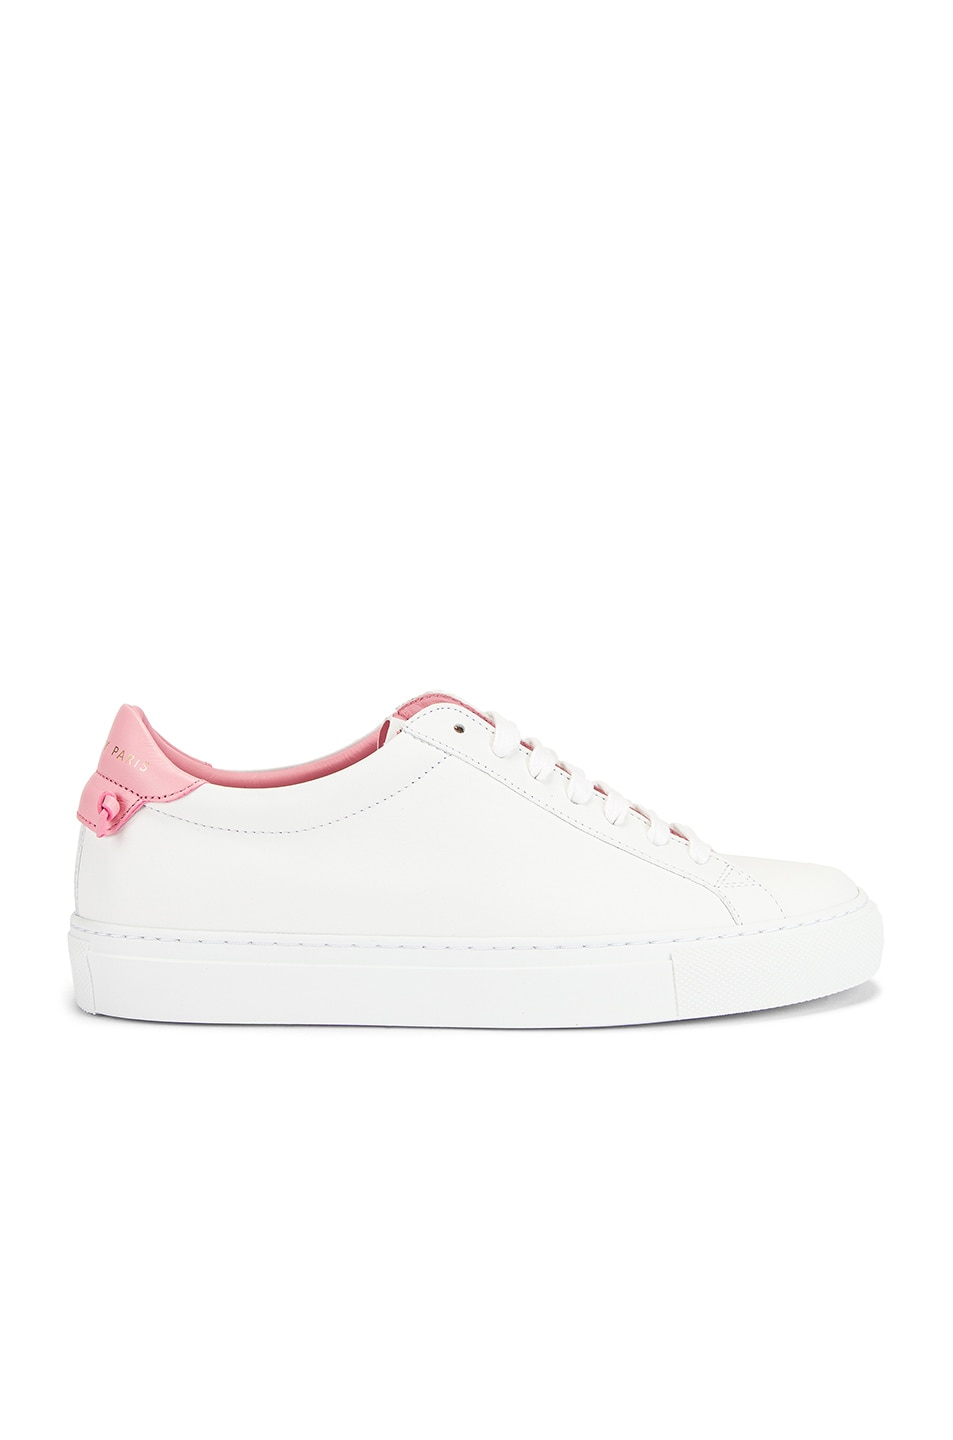 Image 1 of Givenchy Urban Street Low Sneaker in Bubble Gum